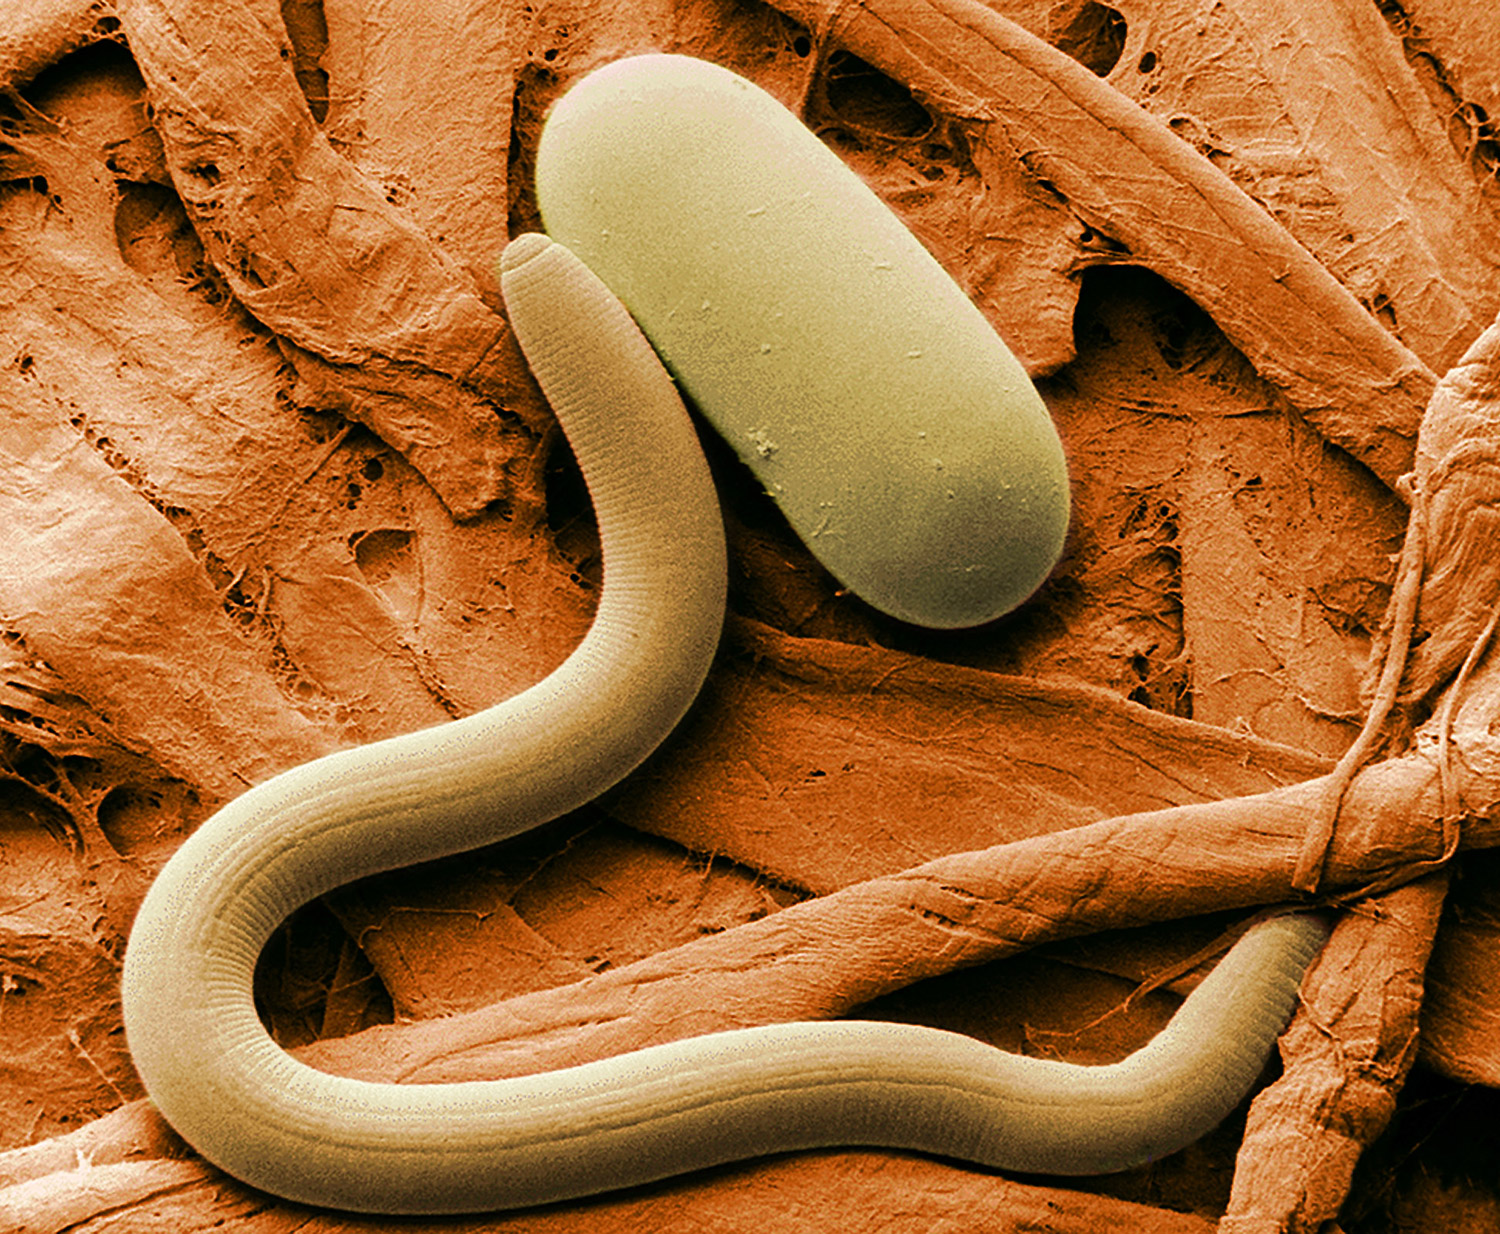 Nematoda asexual reproduction in fungi